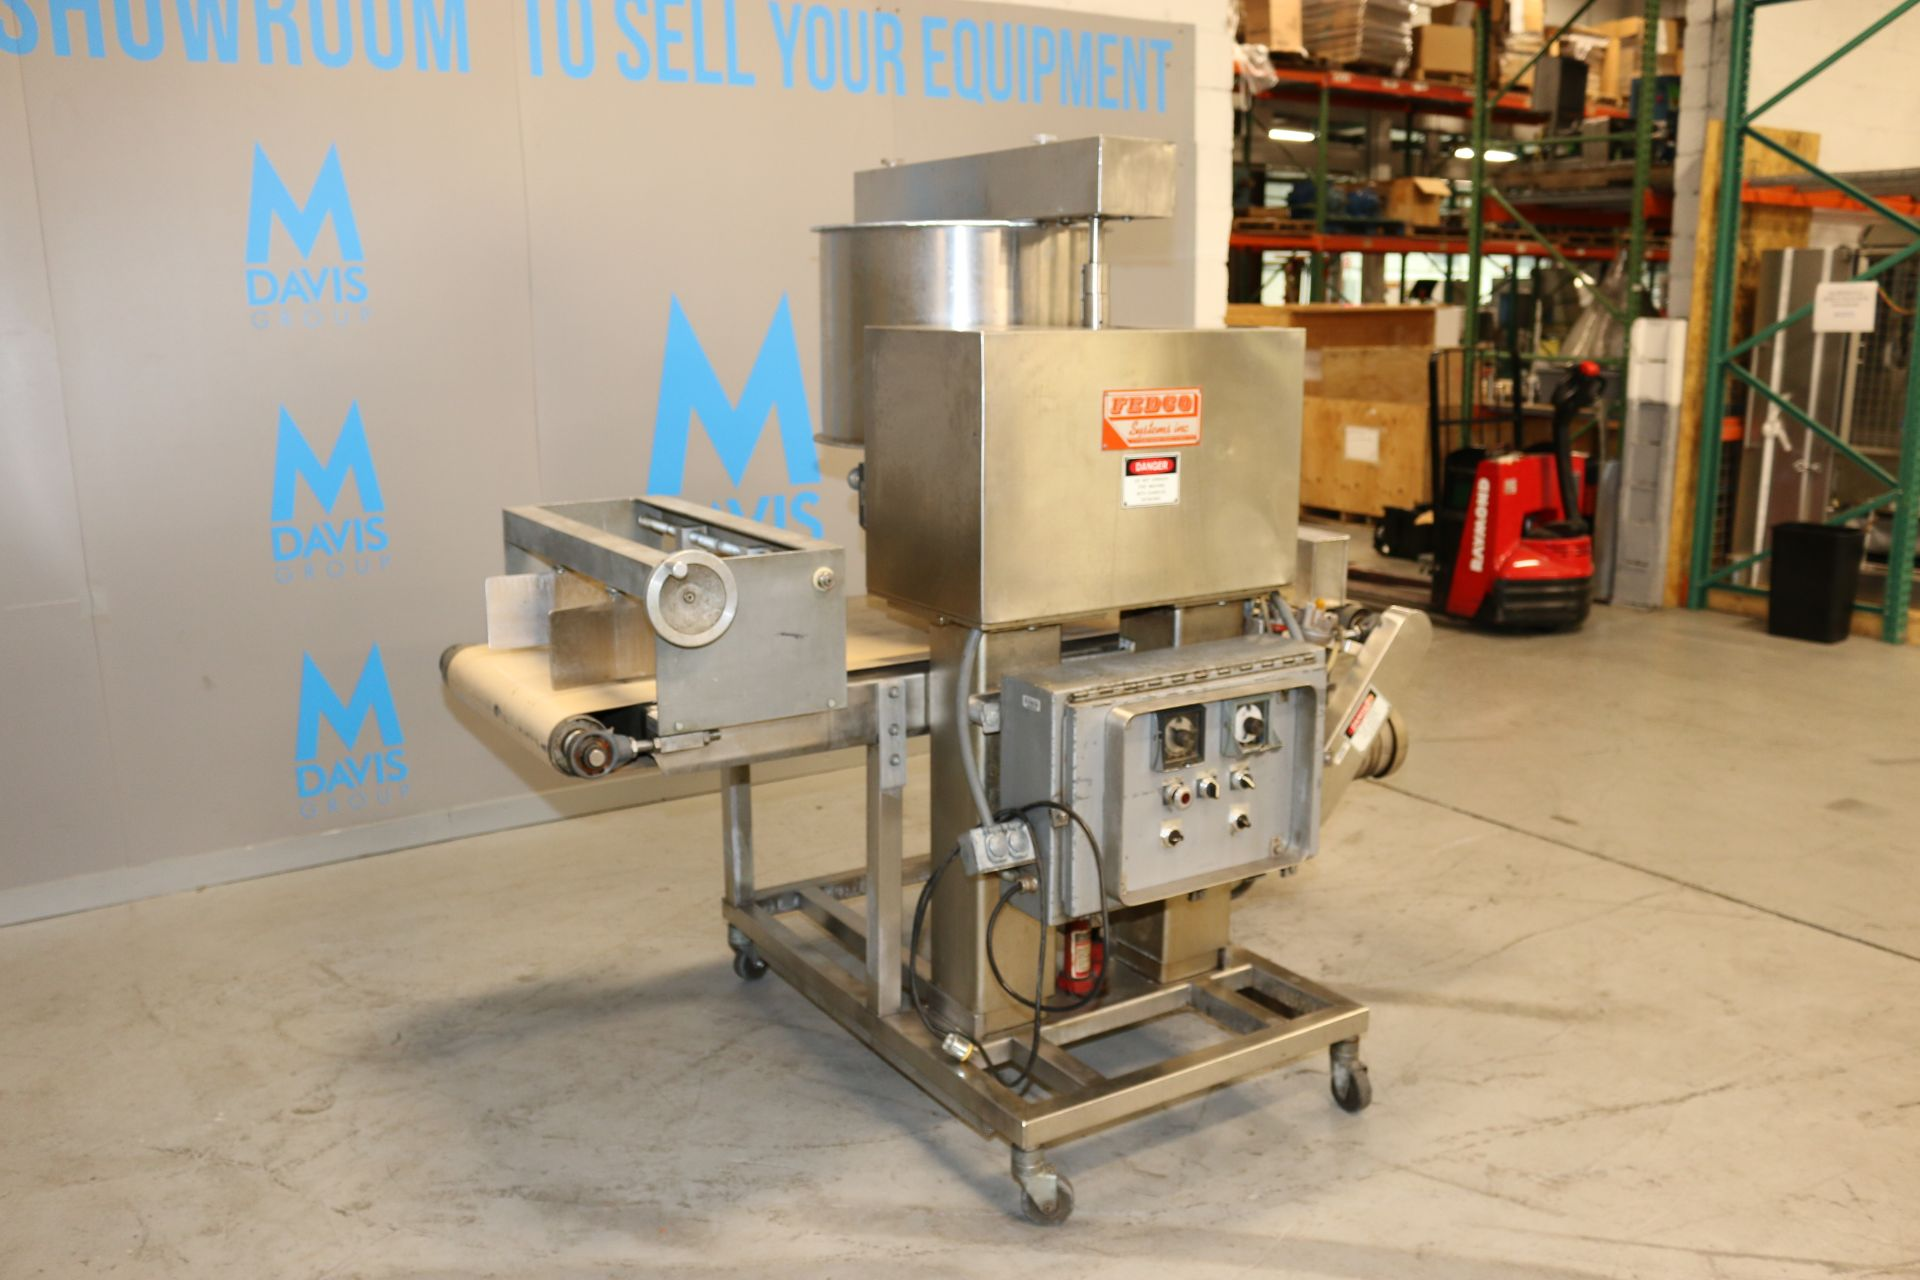 """Lot 46 - Fedco Sysetms Inc. S/S Dual Roll Depositor, M/N 12 C, S/N 126, with Aprox. 23"""" L Infeed/Outfeed"""